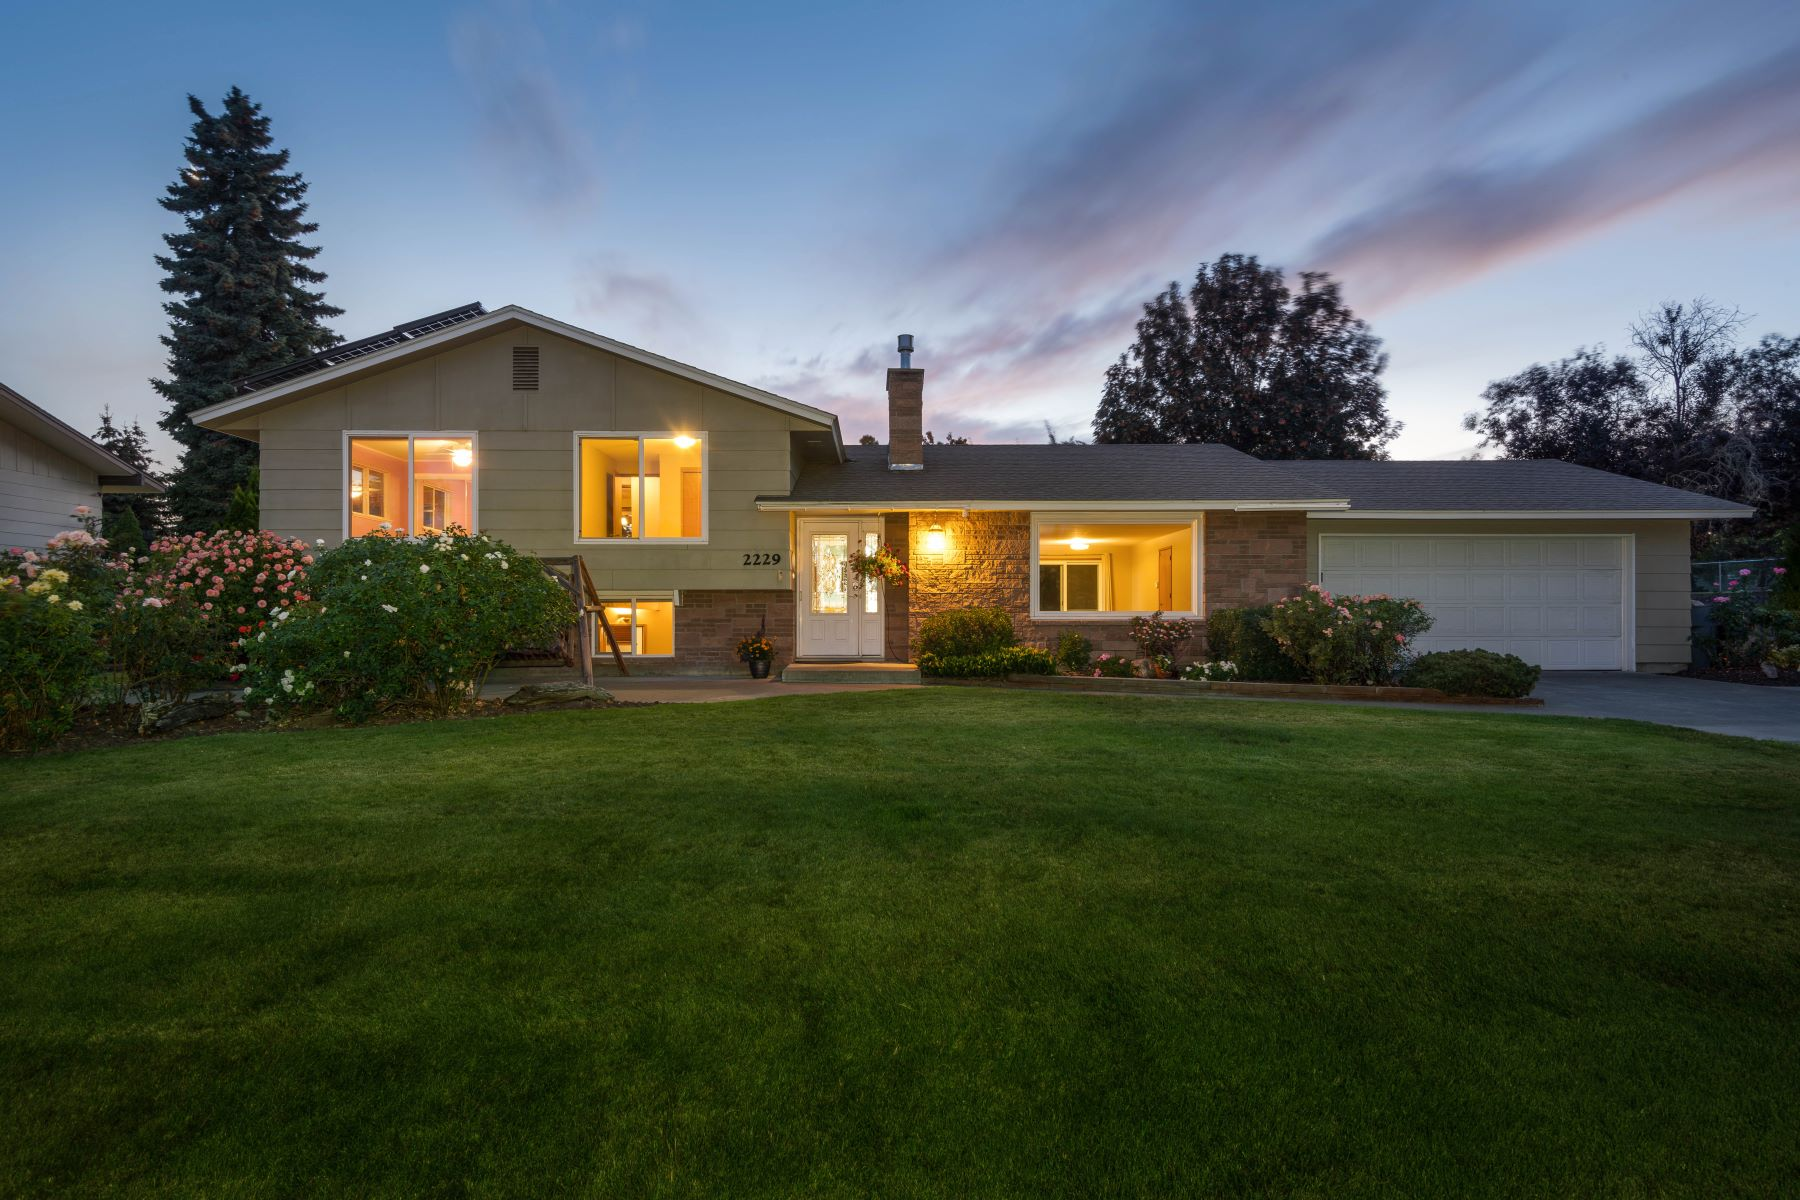 Single Family Homes for Sale at Private Backyard Retreat 2229 Harris Avenue Richland, Washington 99352 United States